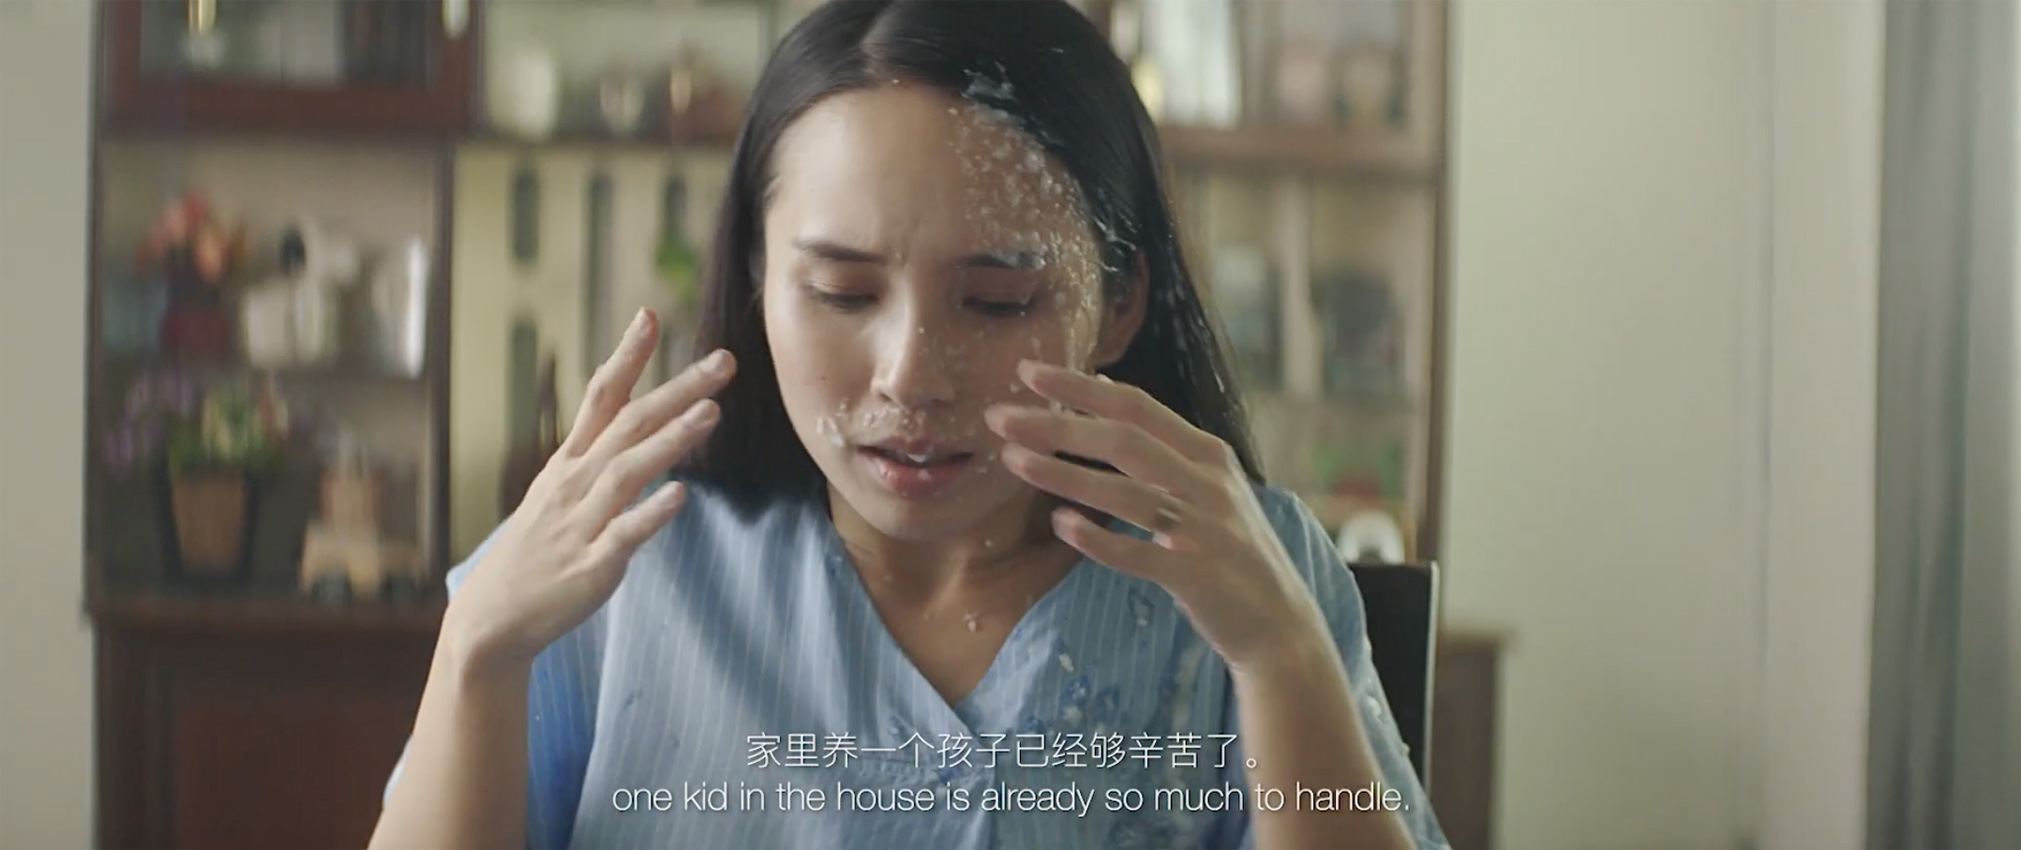 BLKJ Singapore releases new Great Eastern campaign shot by Sweetshop's Simon Cracknell